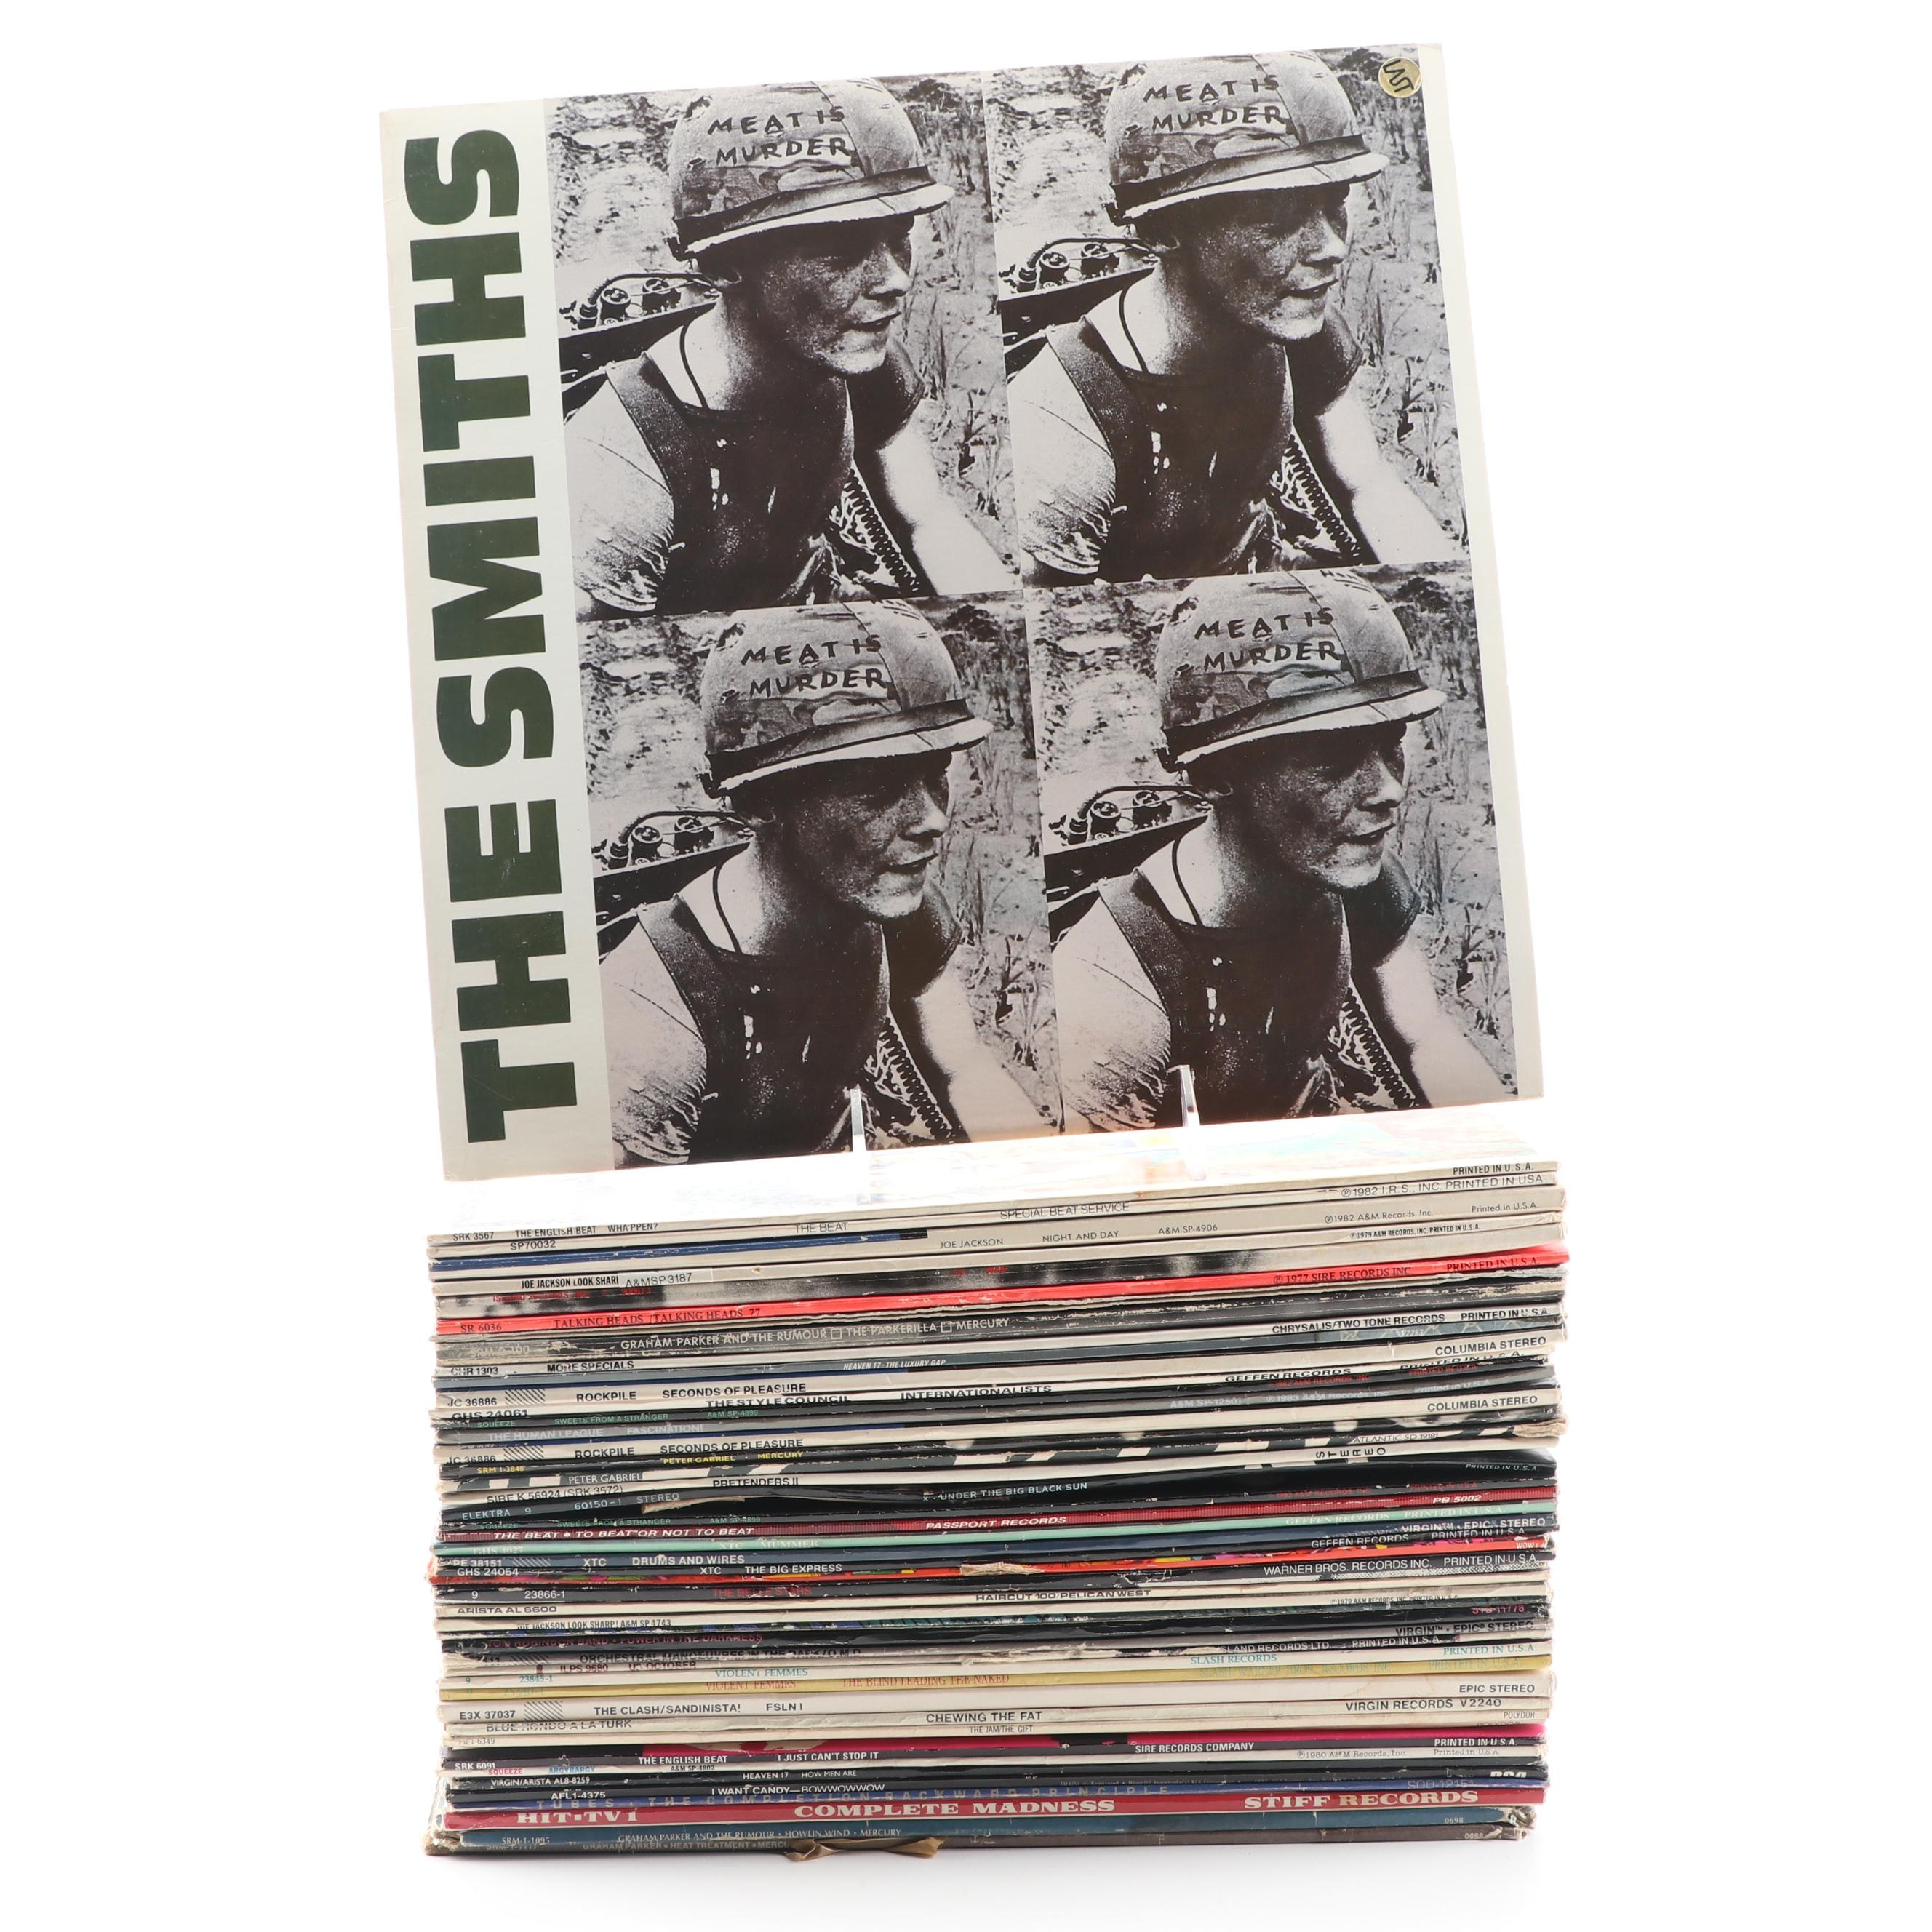 The Smiths, Joe Jackson, English Beat, XTC, Talking Heads and Other Rock Records